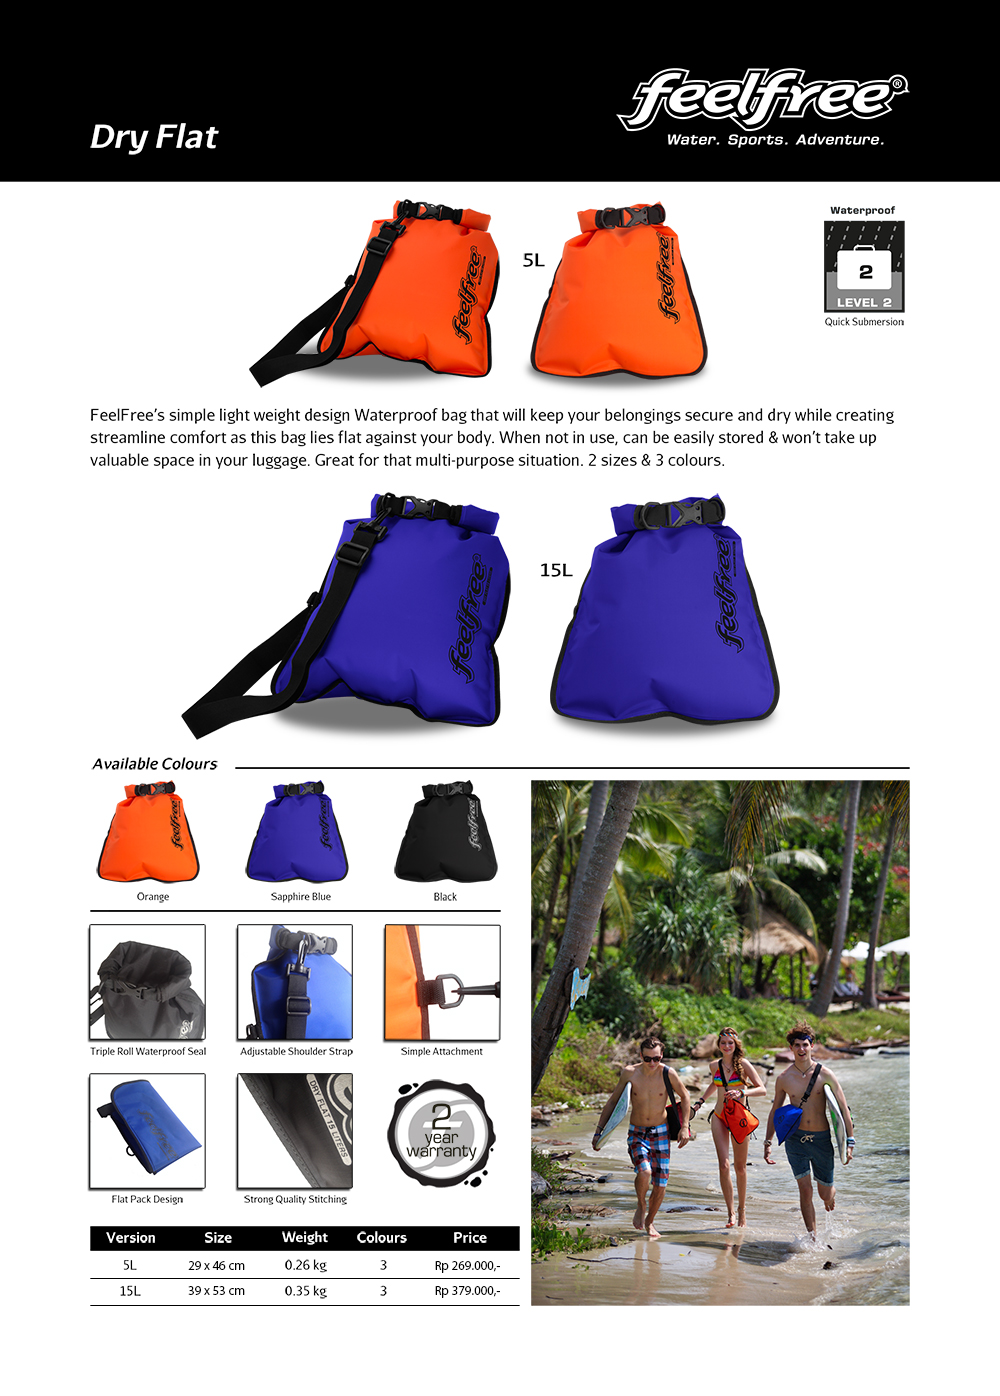 Katalog-Tas-waterproof-Feelfree-Dry-Flat-new